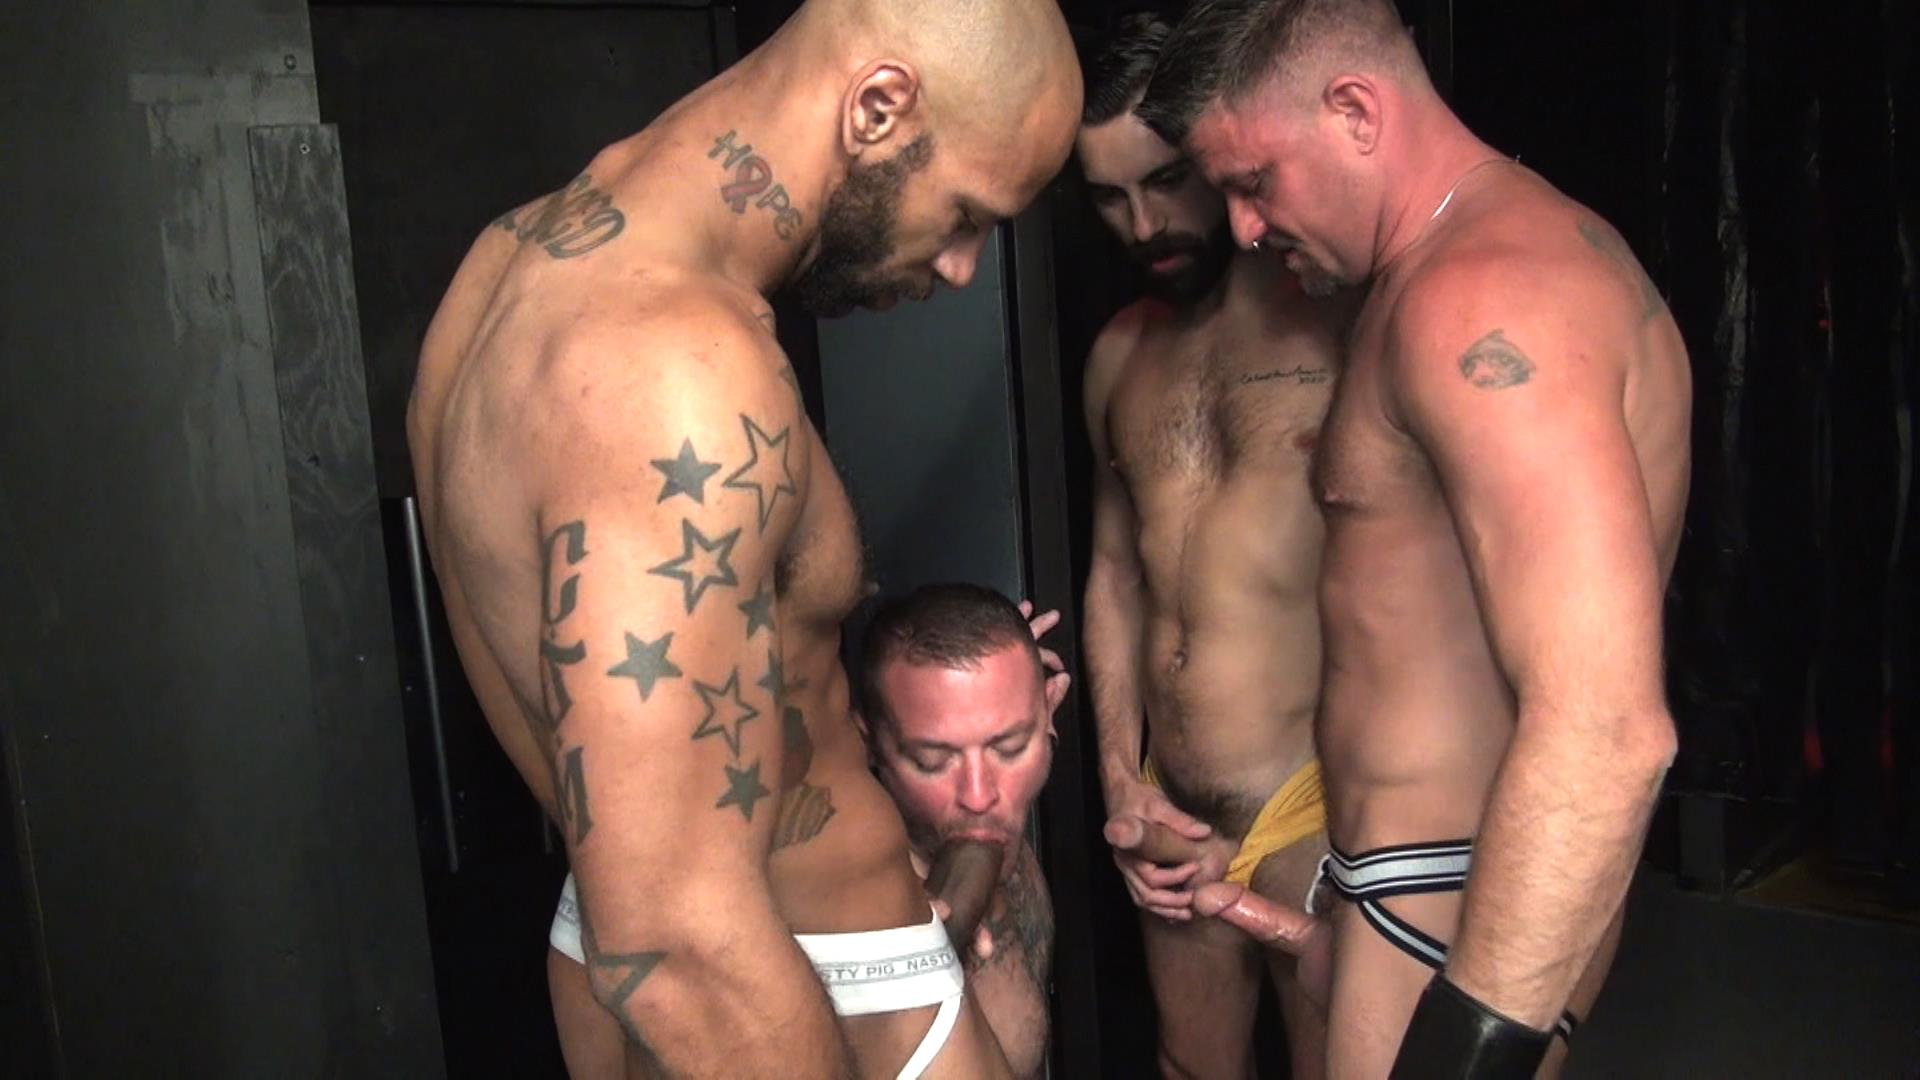 Raw Fuck Club Raw Fuck Club Max Cameron and Christian Matthews and Kory Mitchel and Dean Brody Bareback Bathhouse Amateur Gay Porn 4 Four Way Bareback Fucking And Cum Fest At The Bathhouse